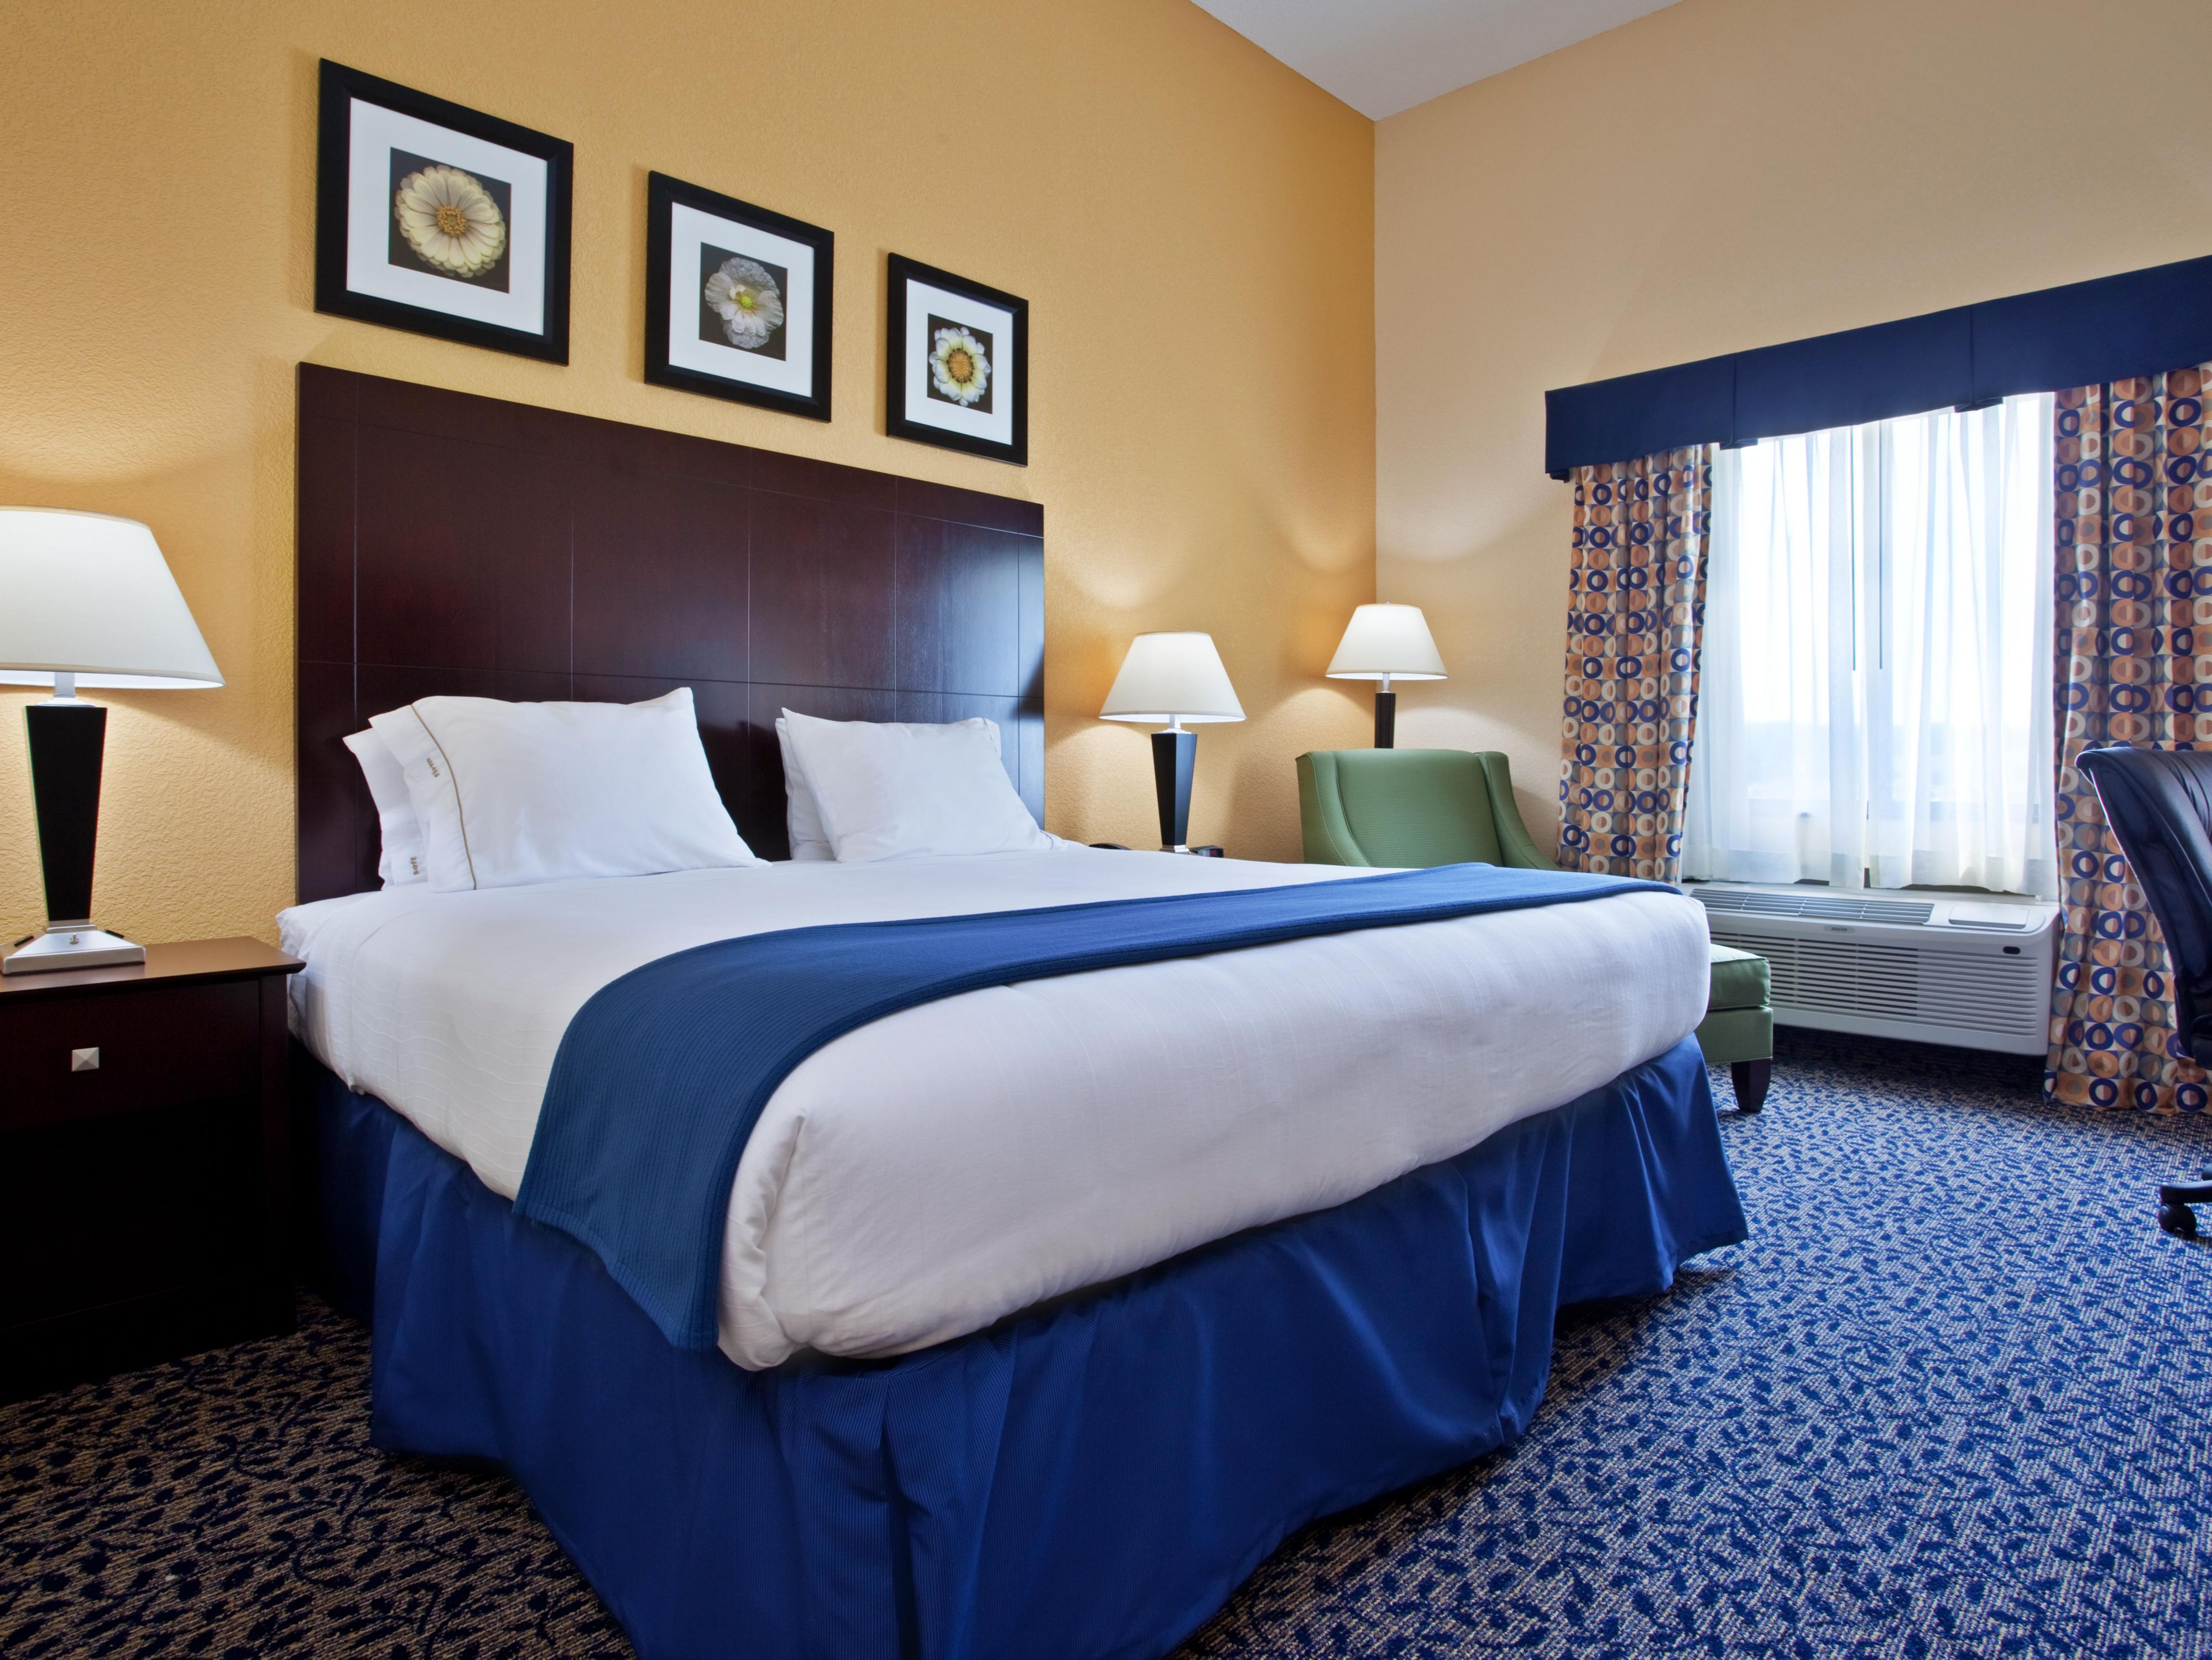 Enjoy extra workspace in our king bed guest room